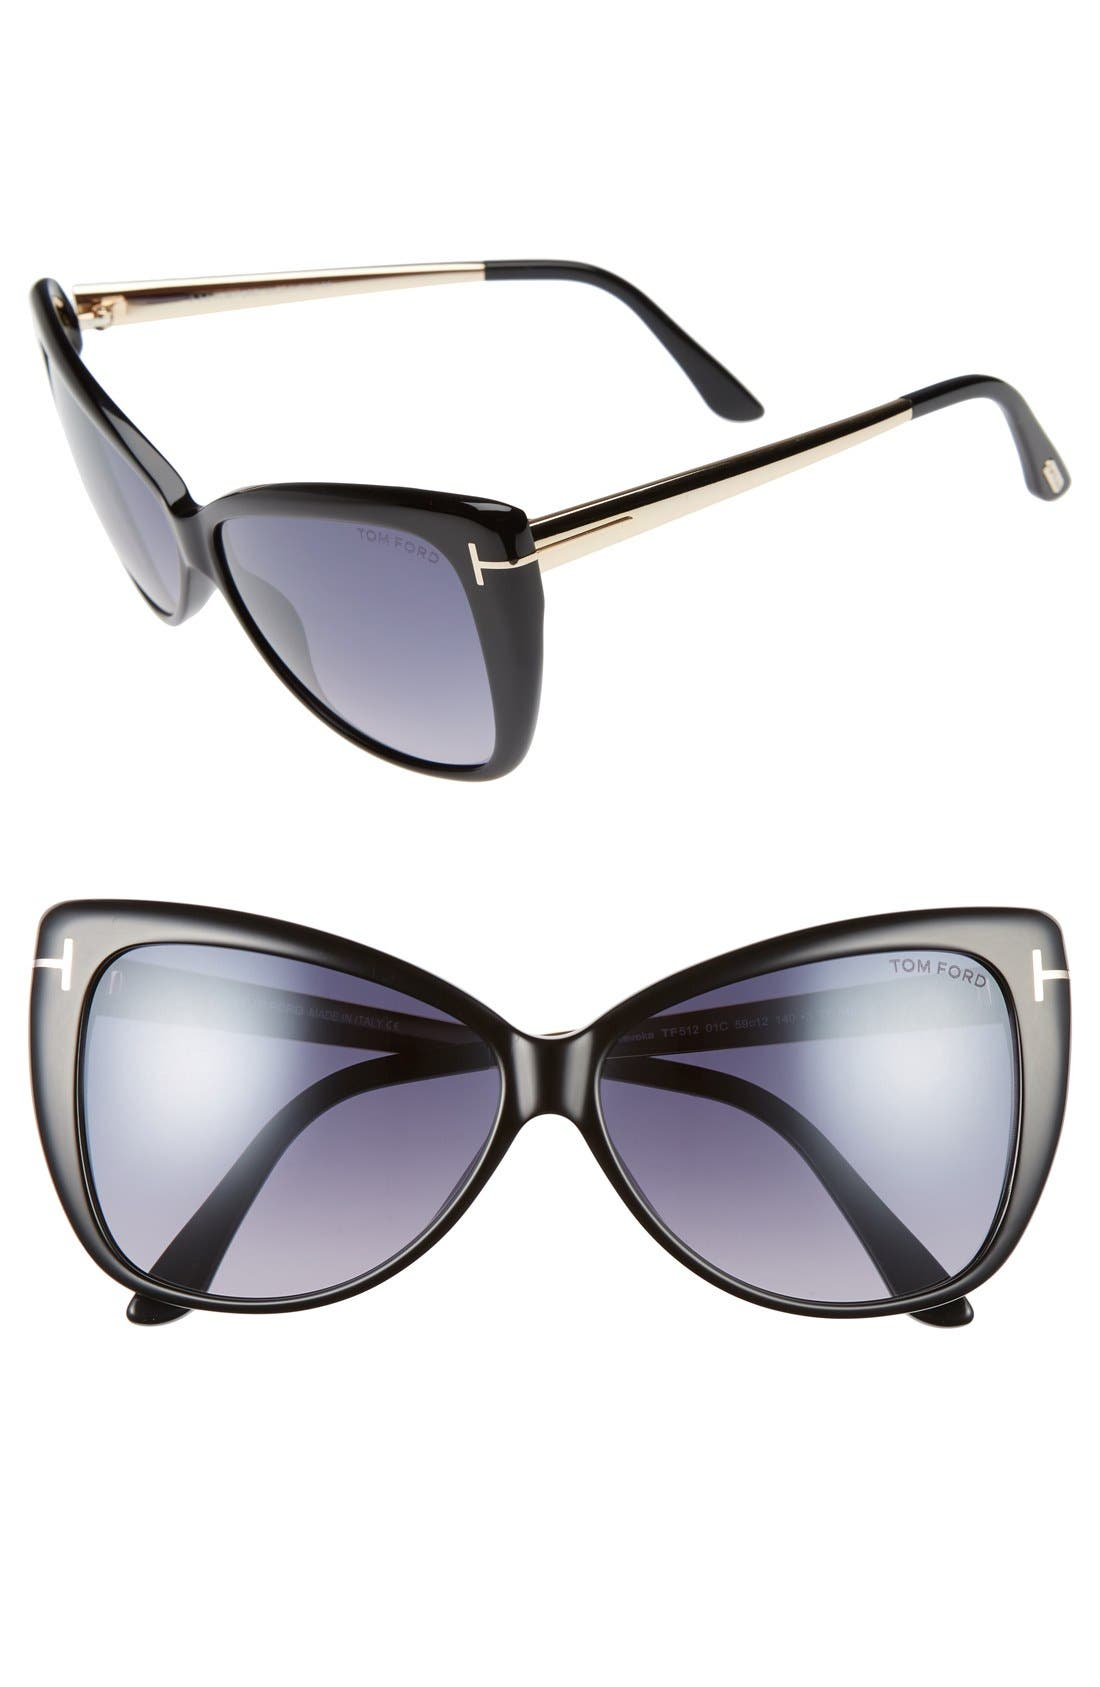 Reveka 59mm Special Fit Butterfly Sunglasses,                             Main thumbnail 1, color,                             001